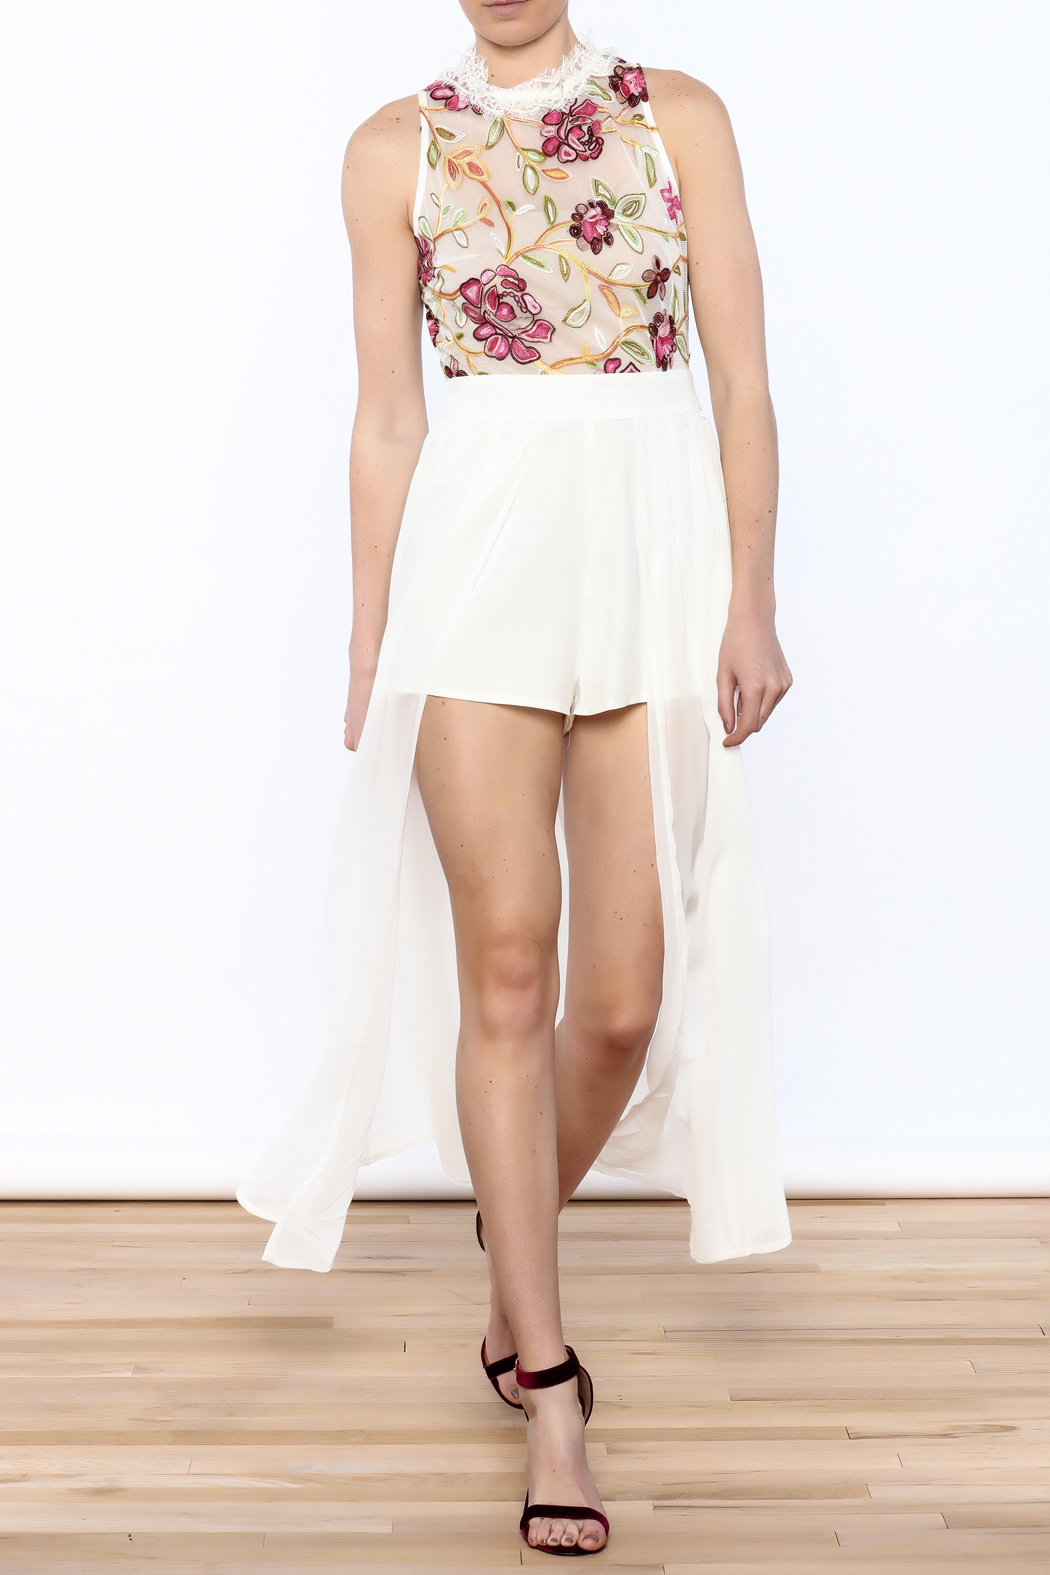 luxxel Embroidered Maxi Romper - Main Image